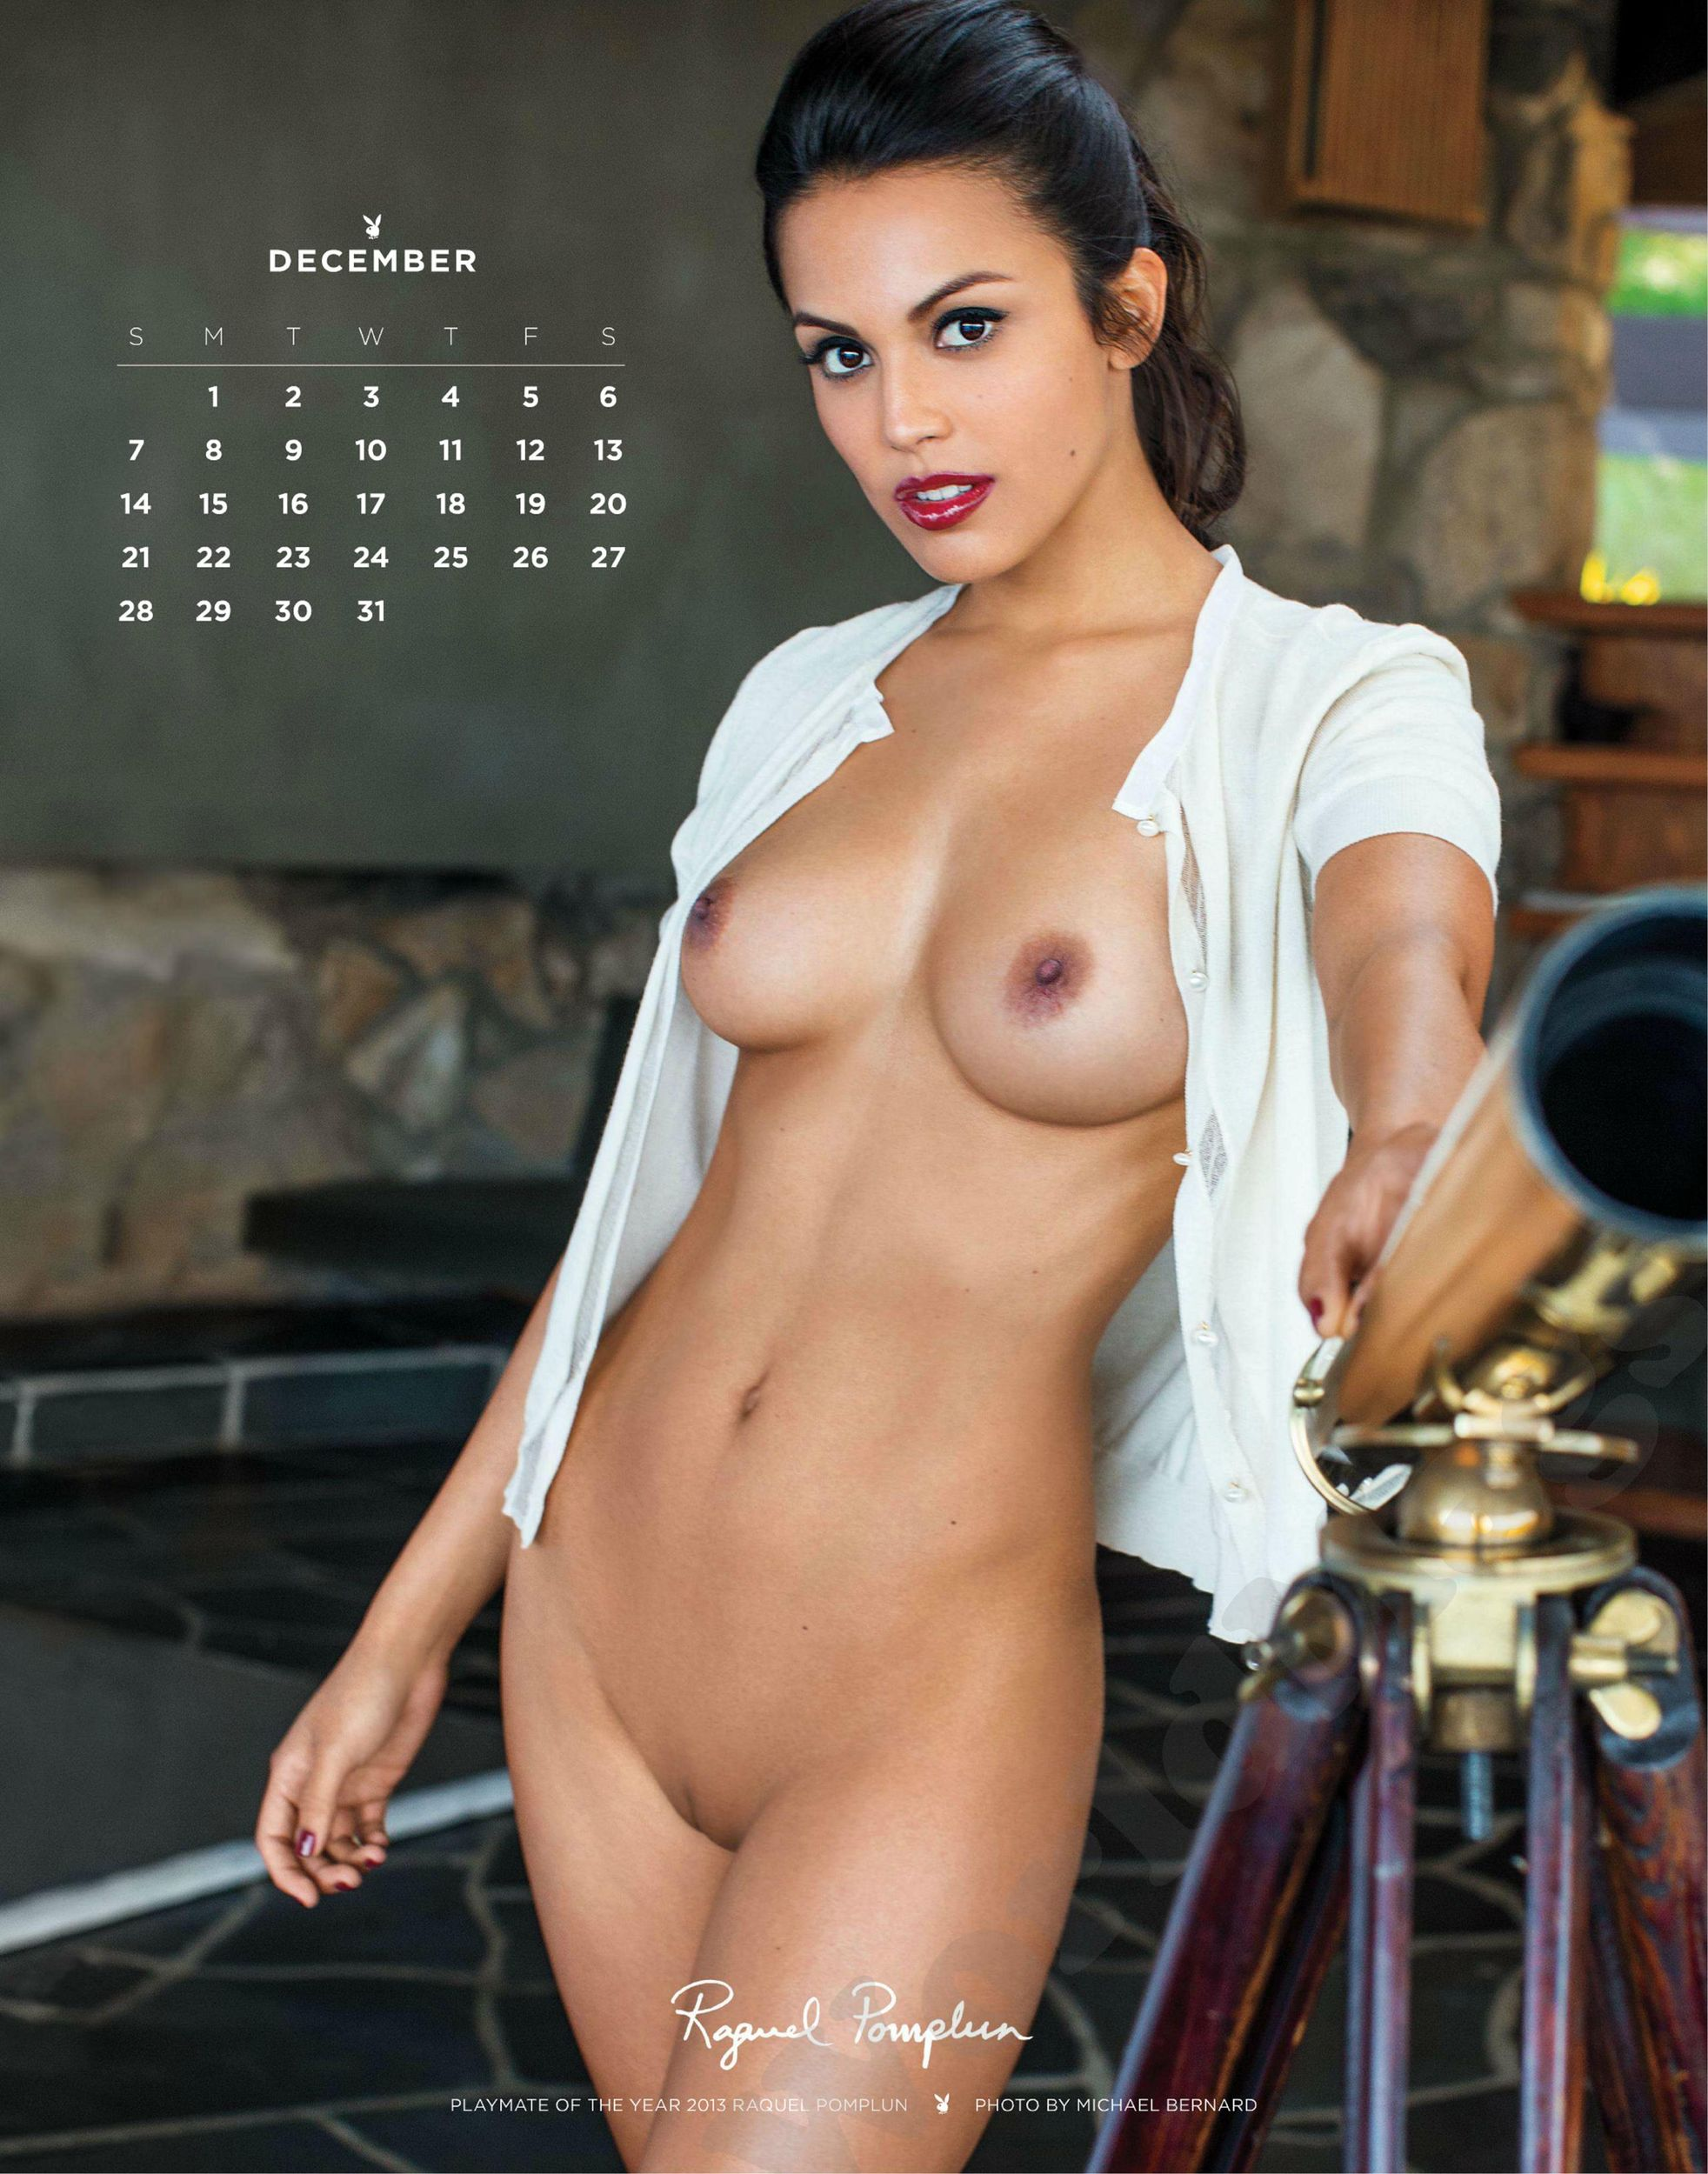 Aiza marquez posing nude for playboy philippines